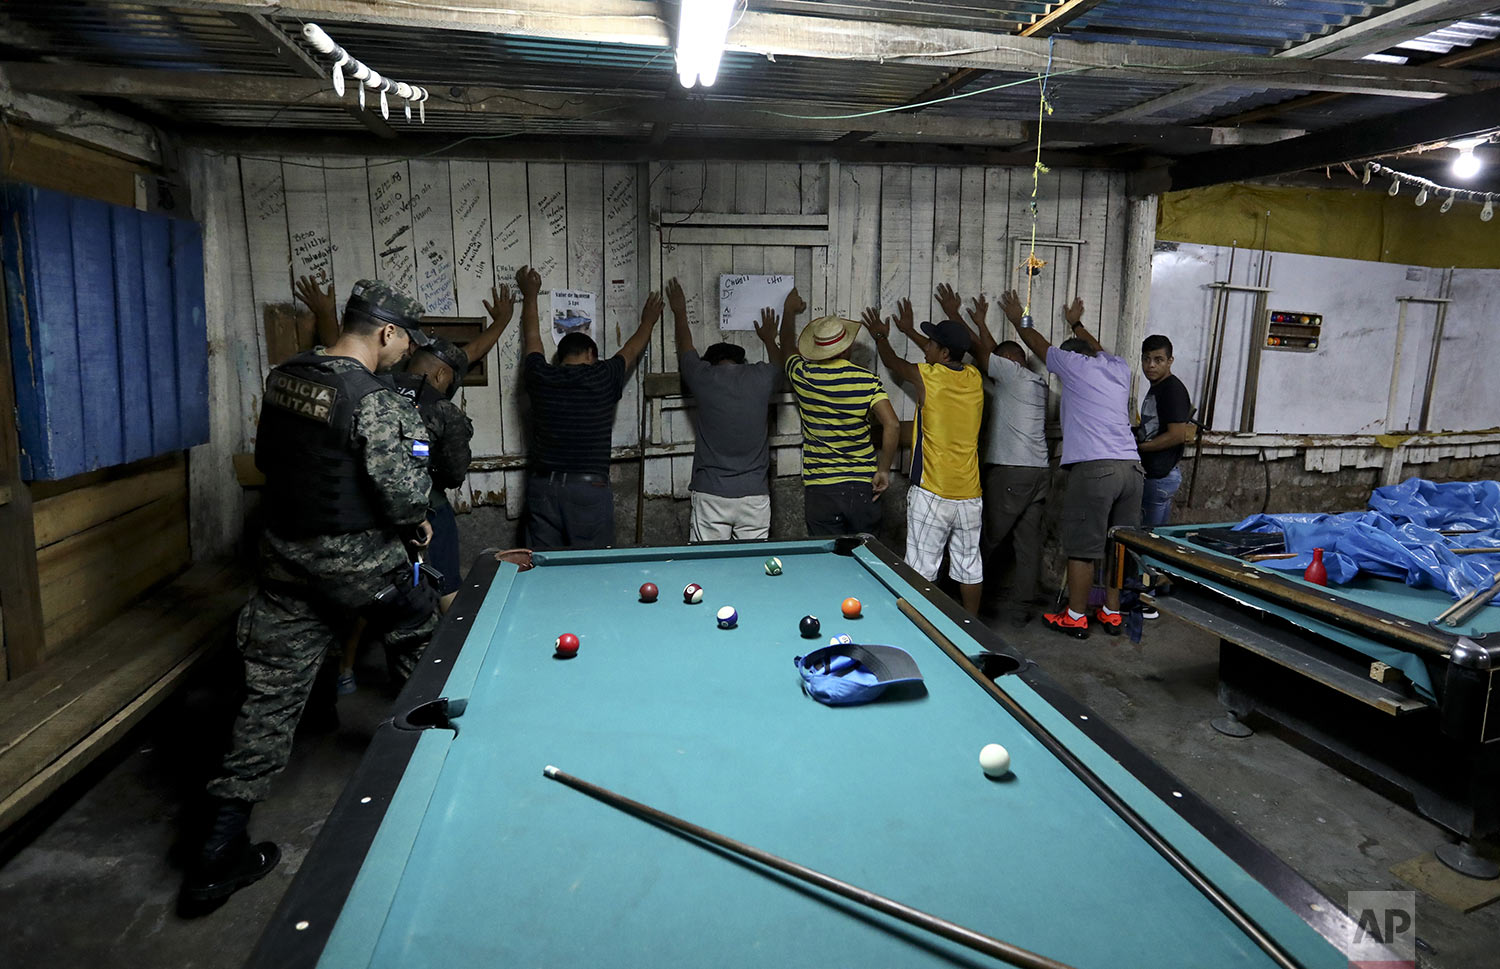 Soldiers enter a pool hall during their routine patrol in Tegucigalpa, Honduras, Wednesday, Aug. 21, 2019. Ironically, the extradition of drug capos to the U.S. under Honduran President Juan Orlando Hernández could have helped build the case against his own brother, in which he is now implicated. (AP Photo/Eduardo Verdugo)